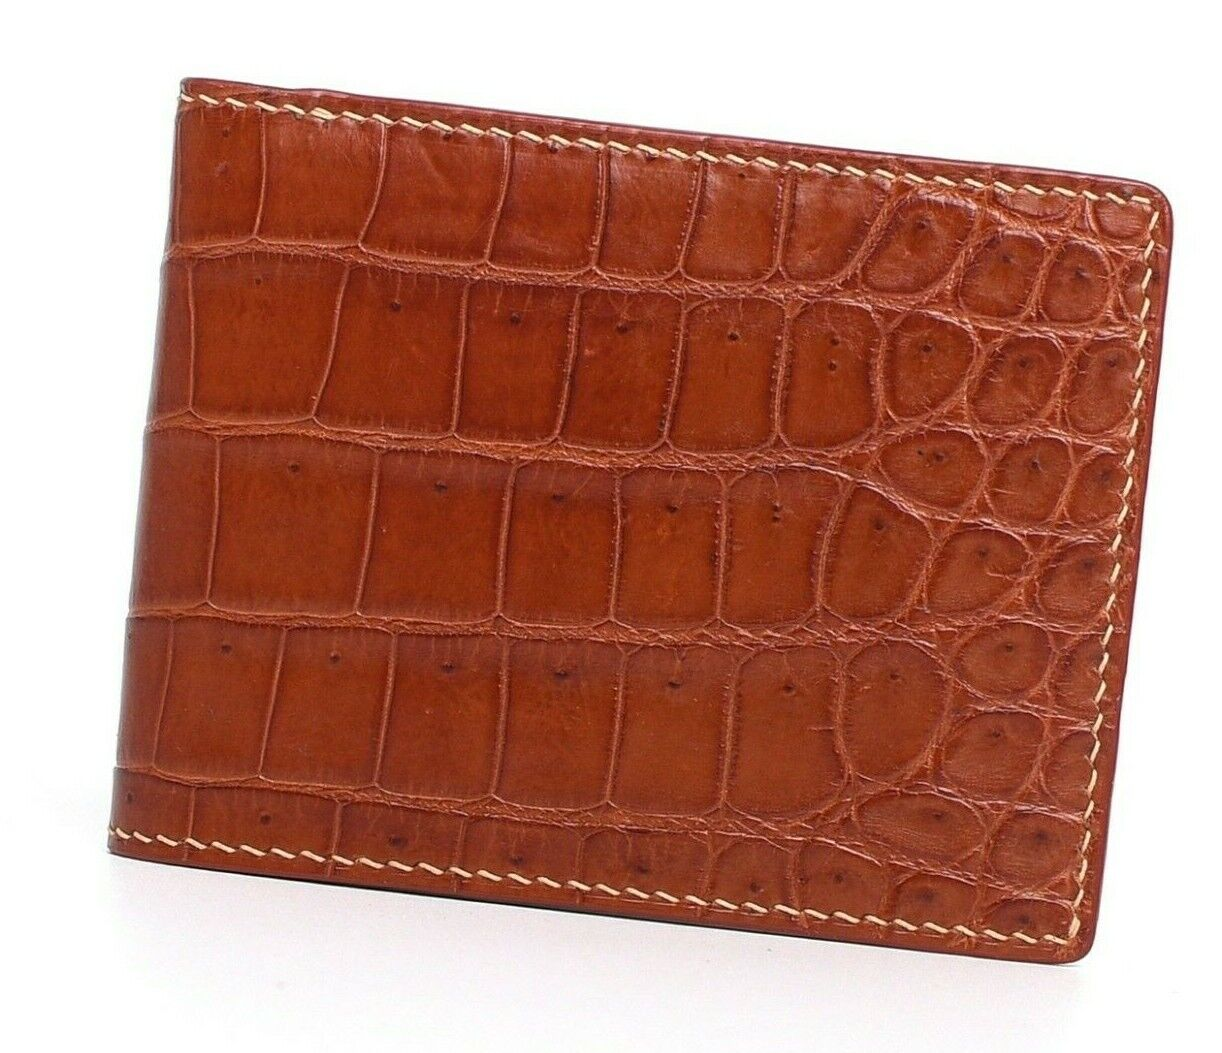 High Quality Crocodile Alligator Belly Leather Bifold Wallet Handstitched #WH202